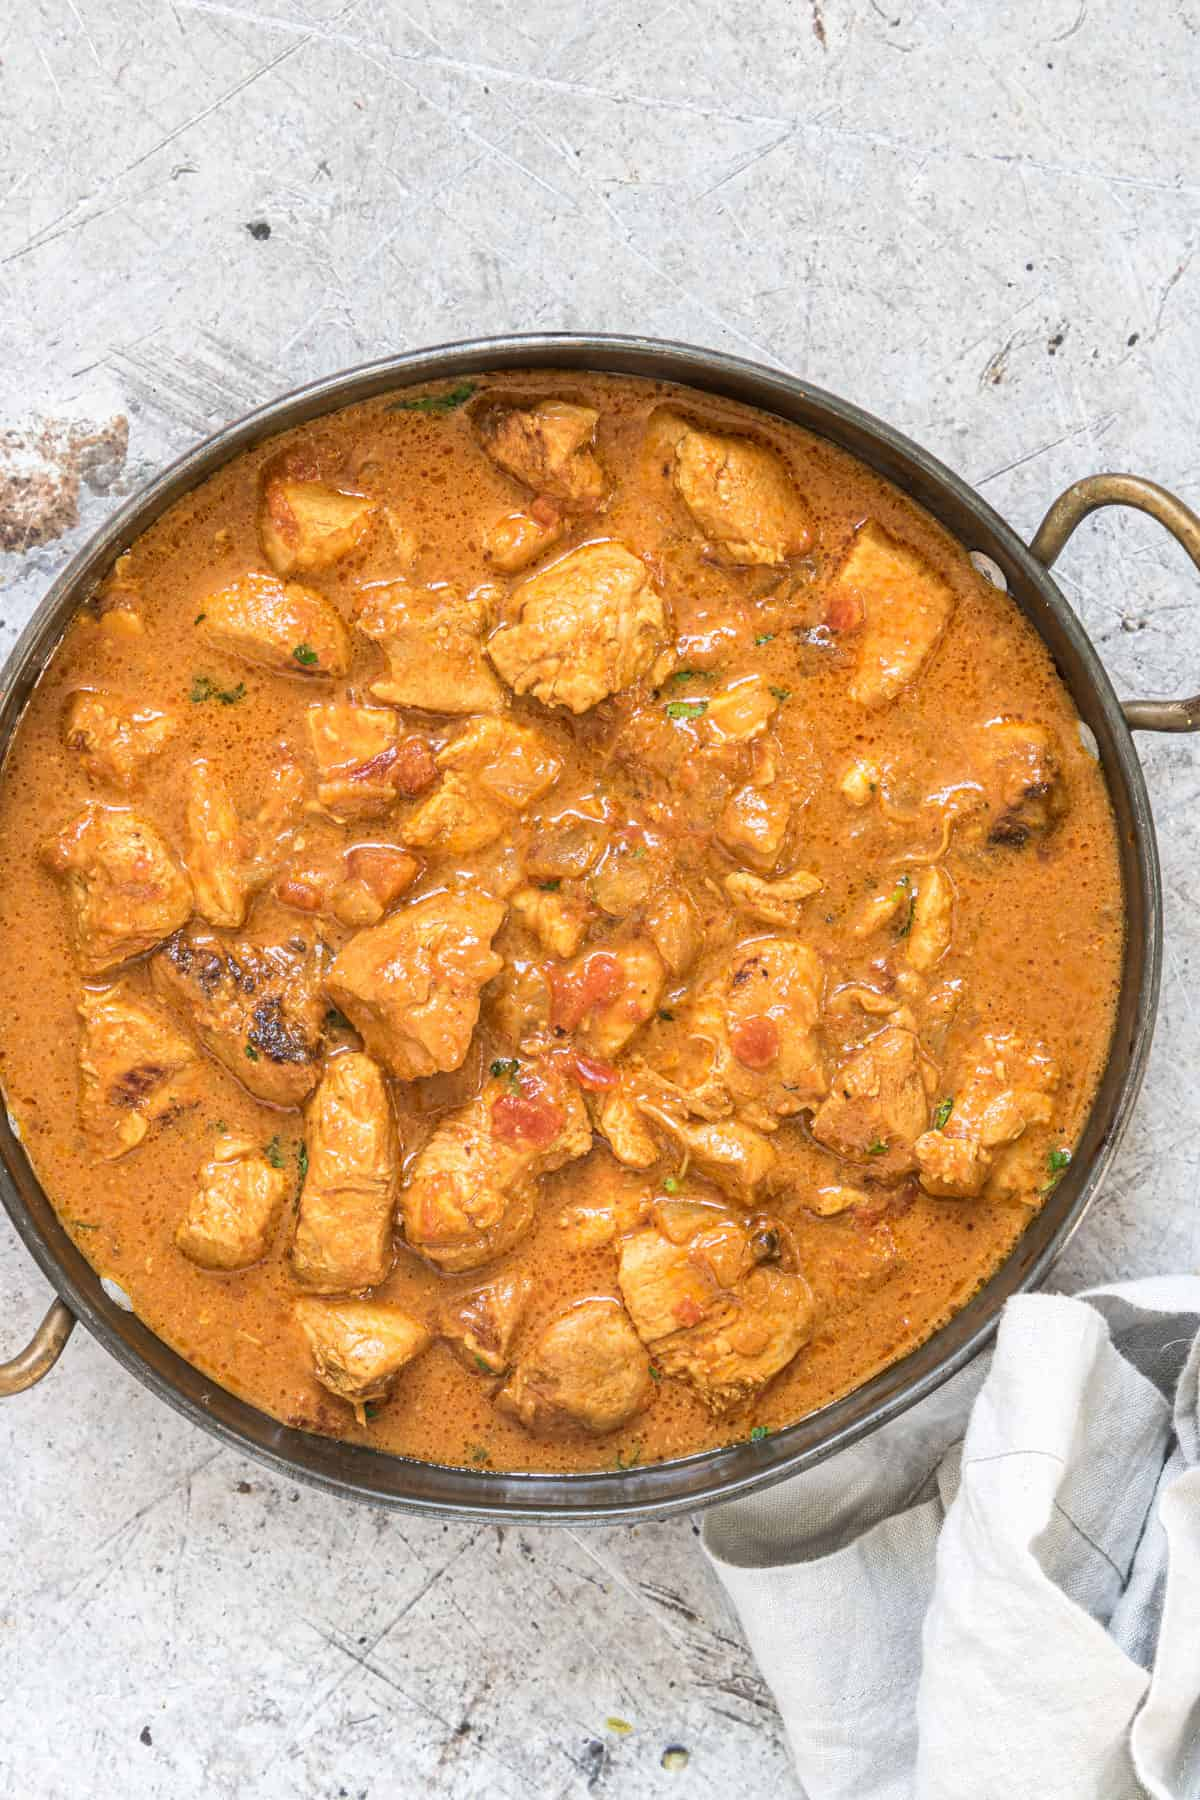 the finished instant pot coconut chicken curry ready to be served